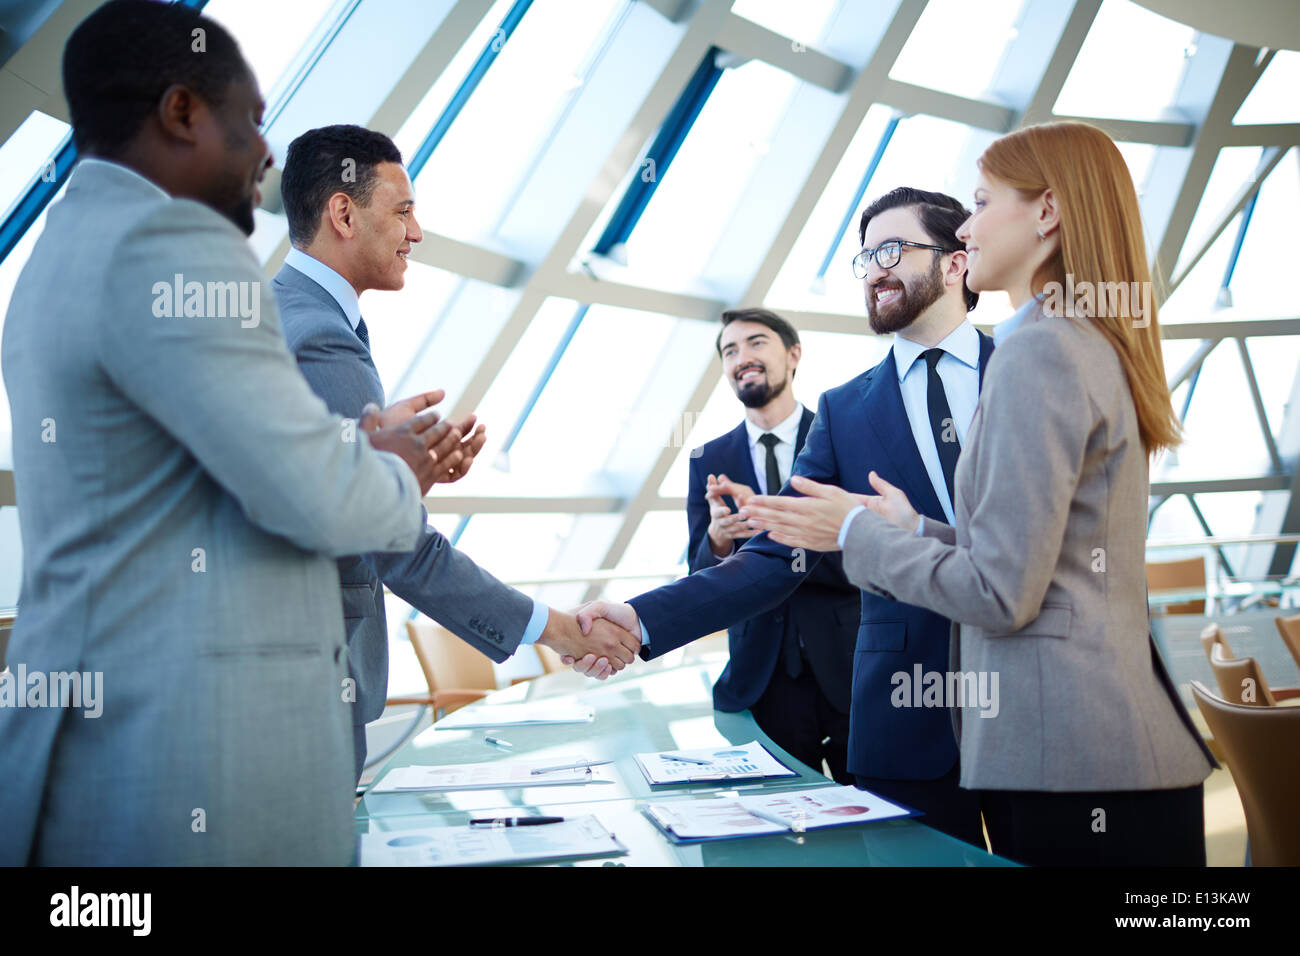 Group of business people congratulating their colleagues with striking grand deal - Stock Image